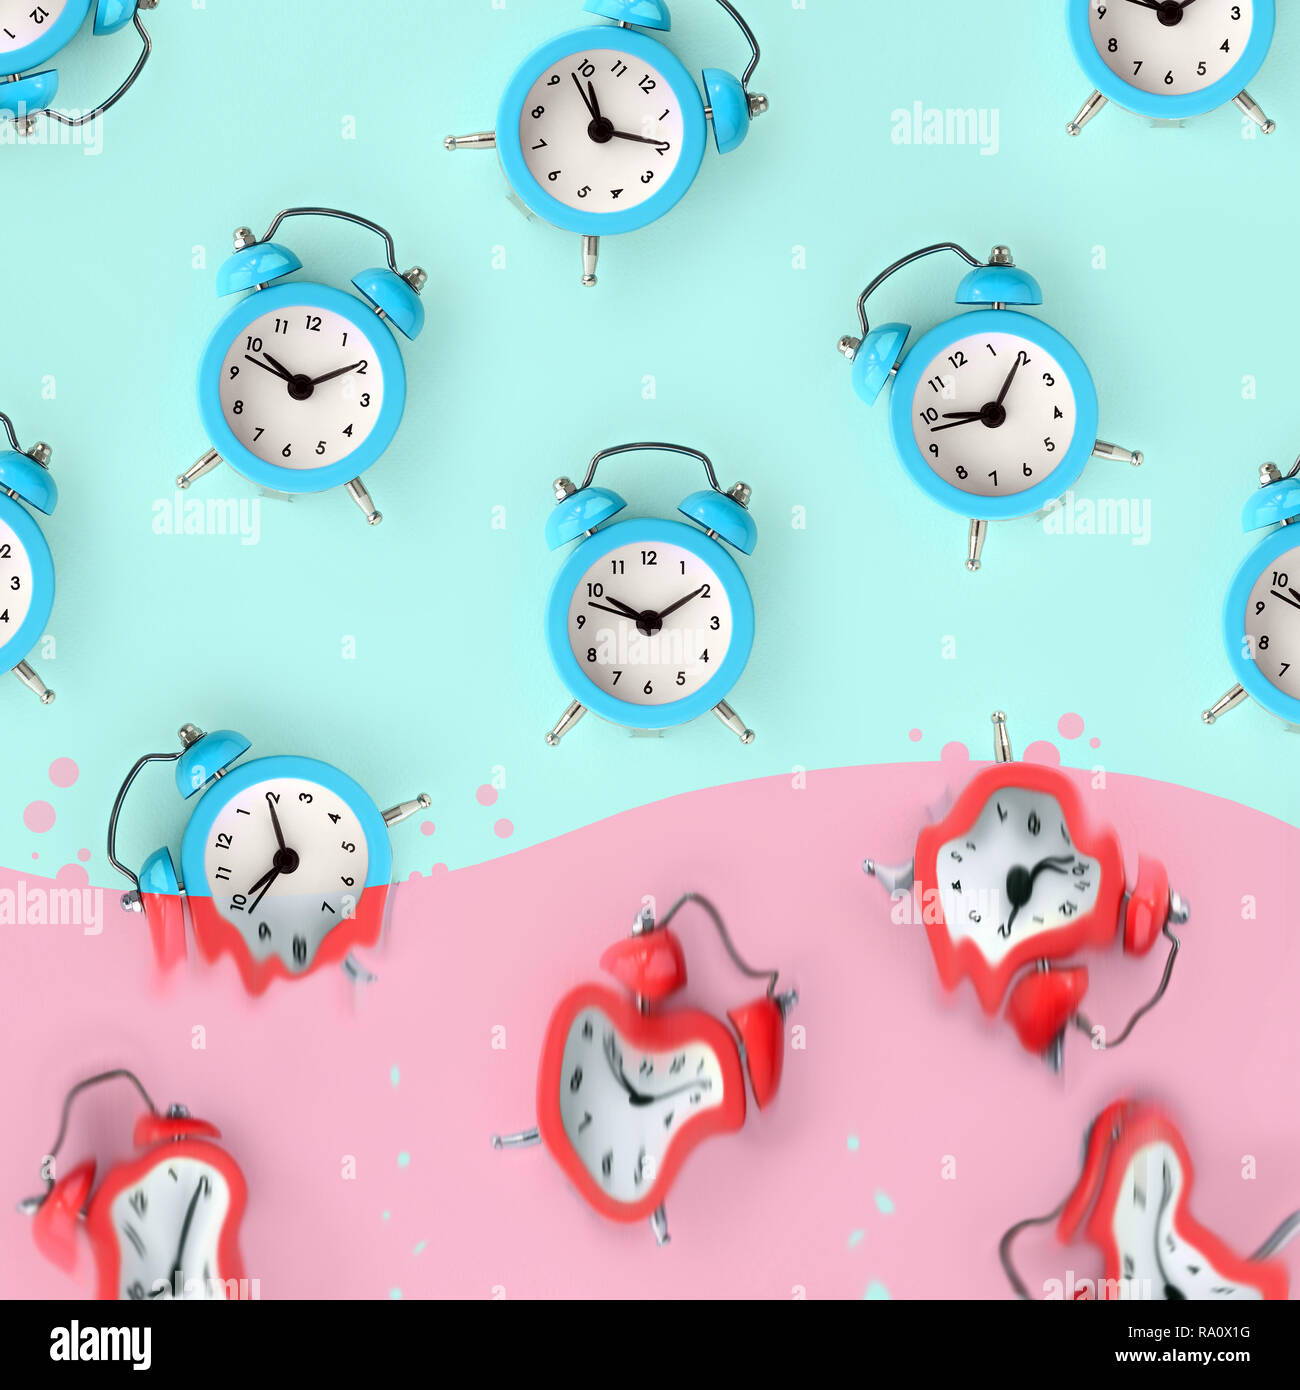 Time is running out concept shows blue alarm clocks that is dissolving down by melting in pastel pink liquid substance . Surreal style image Stock Photo